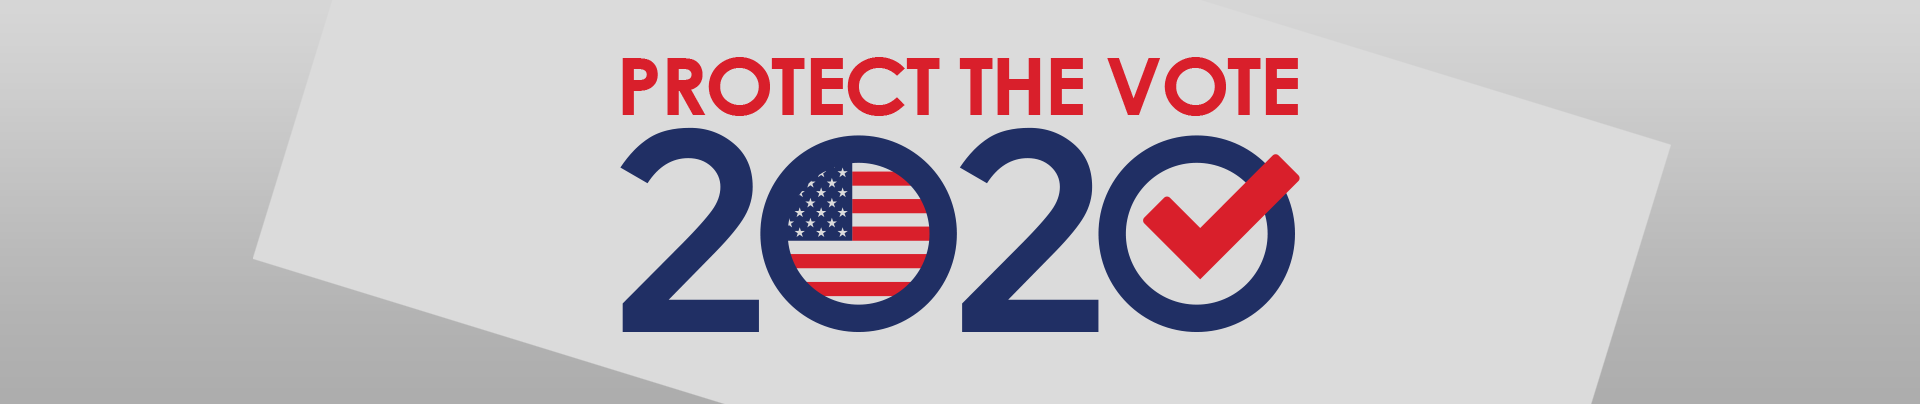 2020PatriotProject-Header